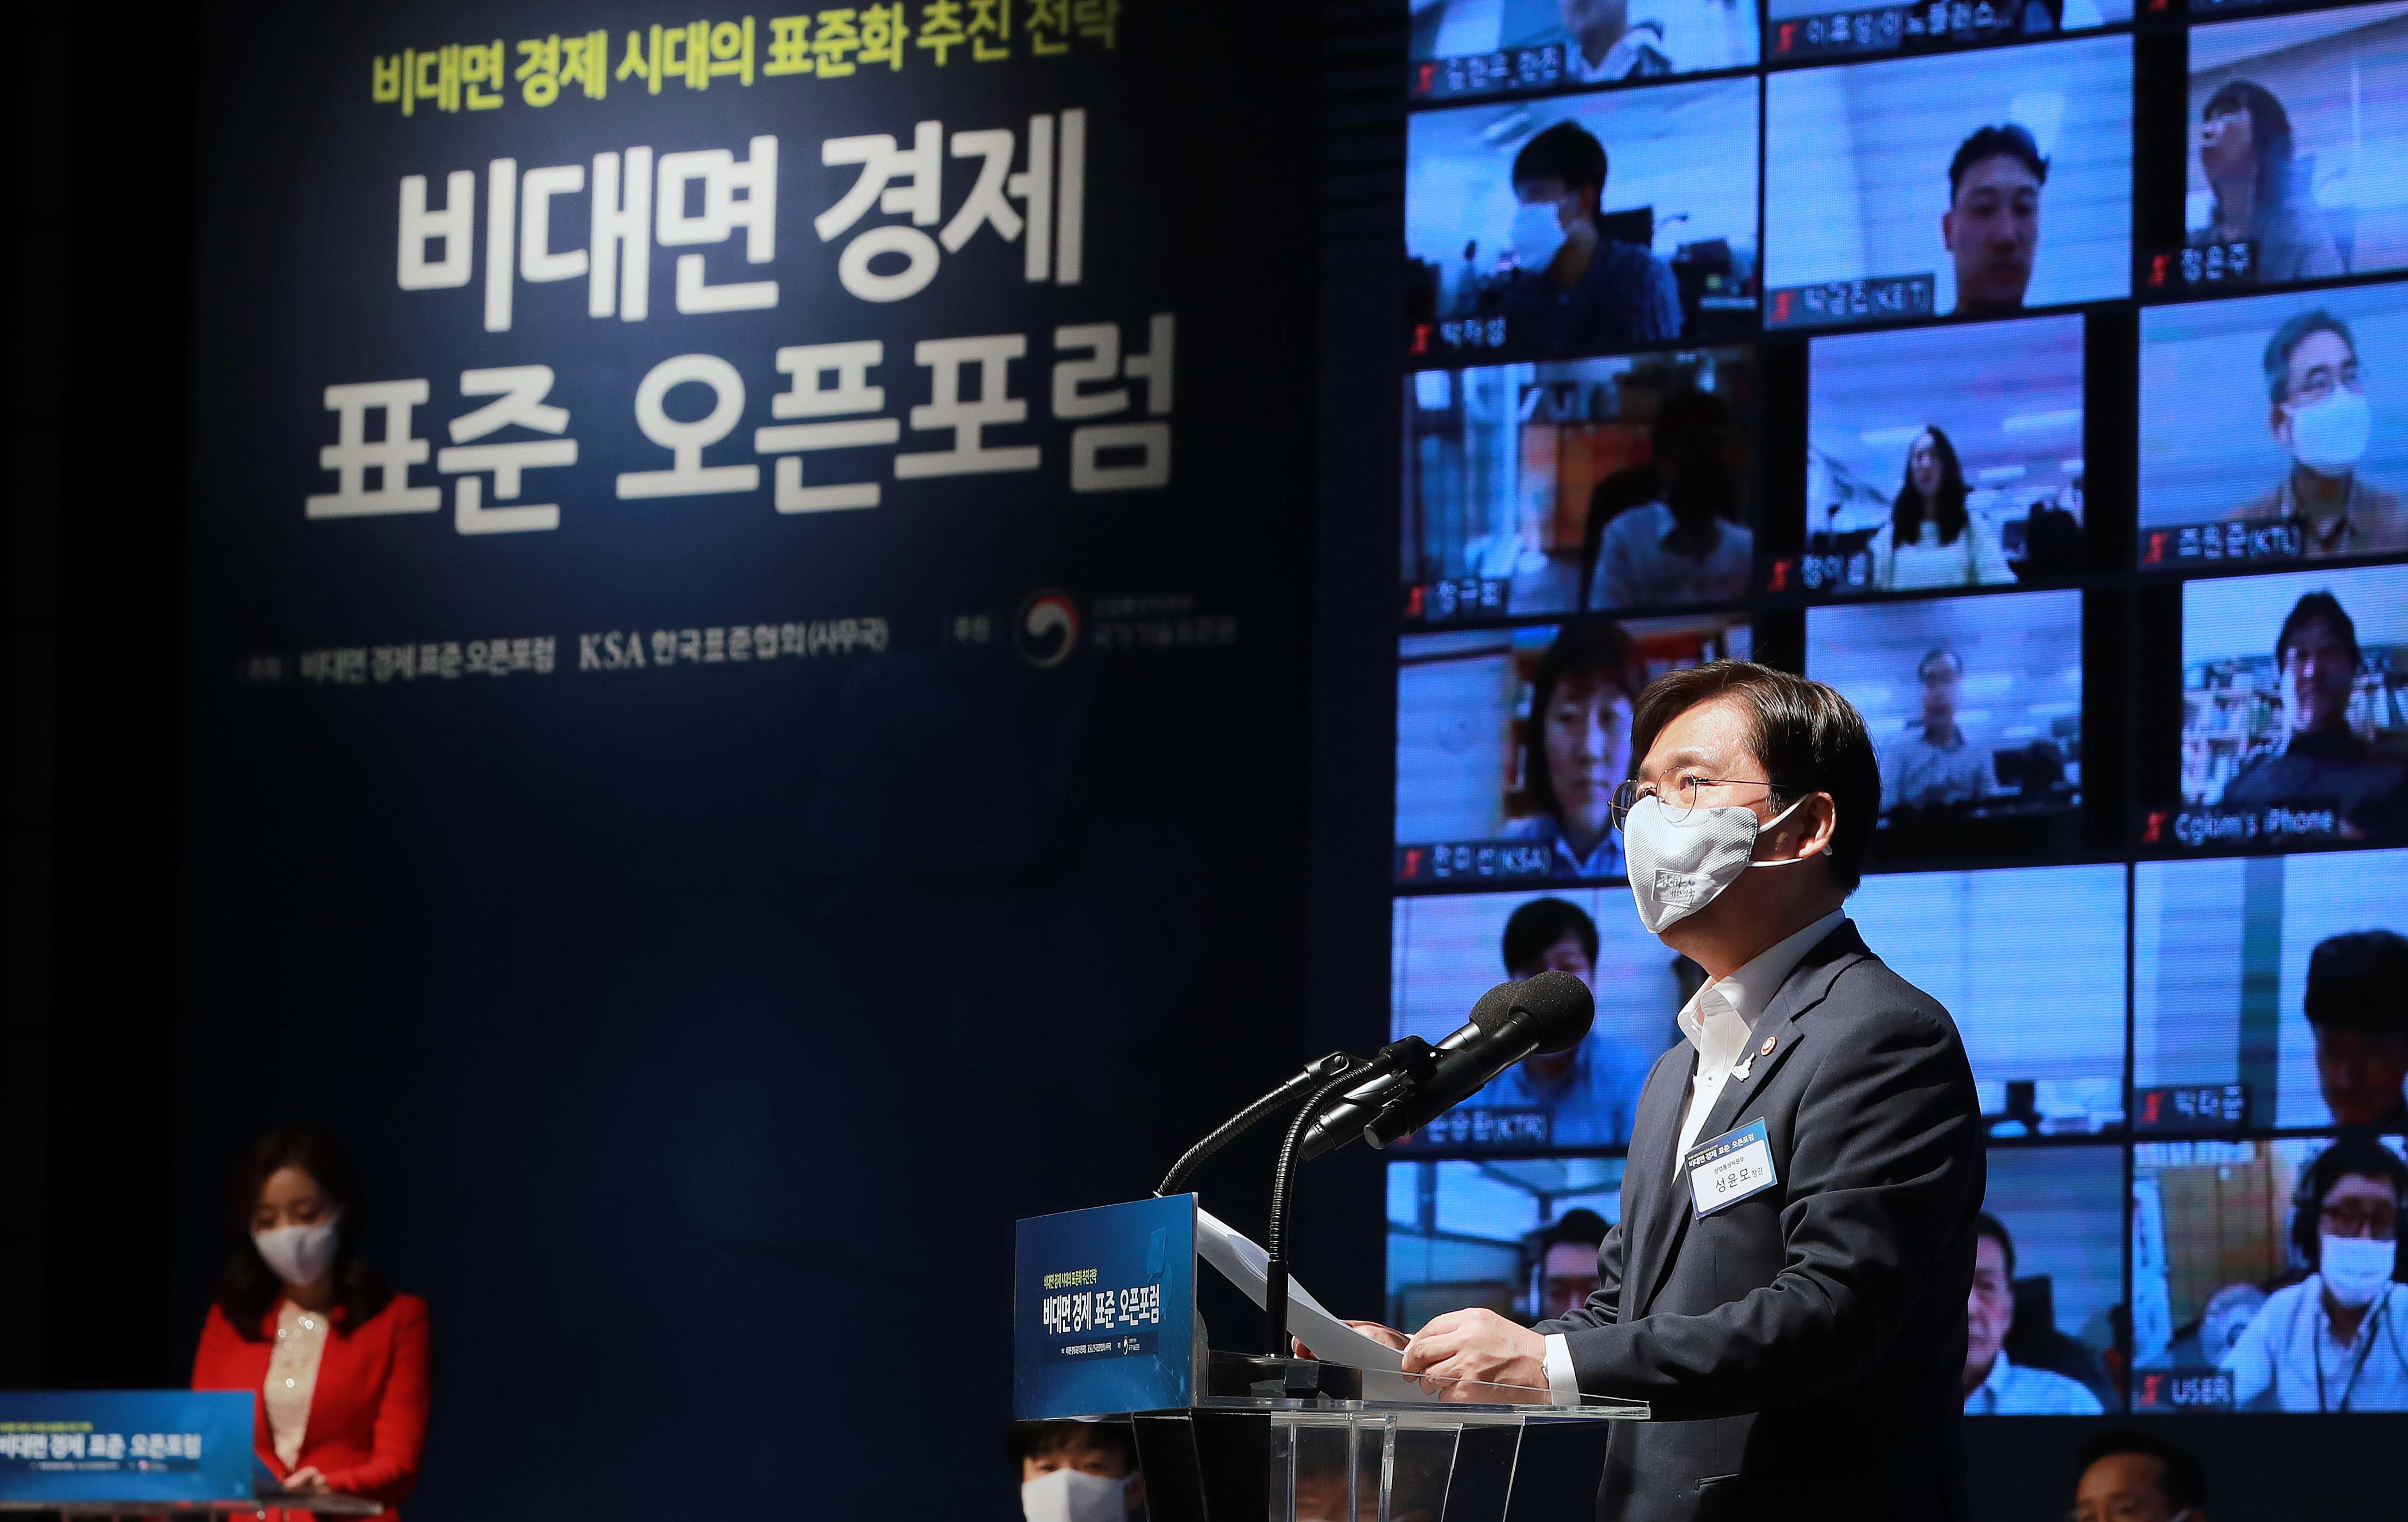 South Korea to work in public-private partnership to become leader in contact-free economy Image 0